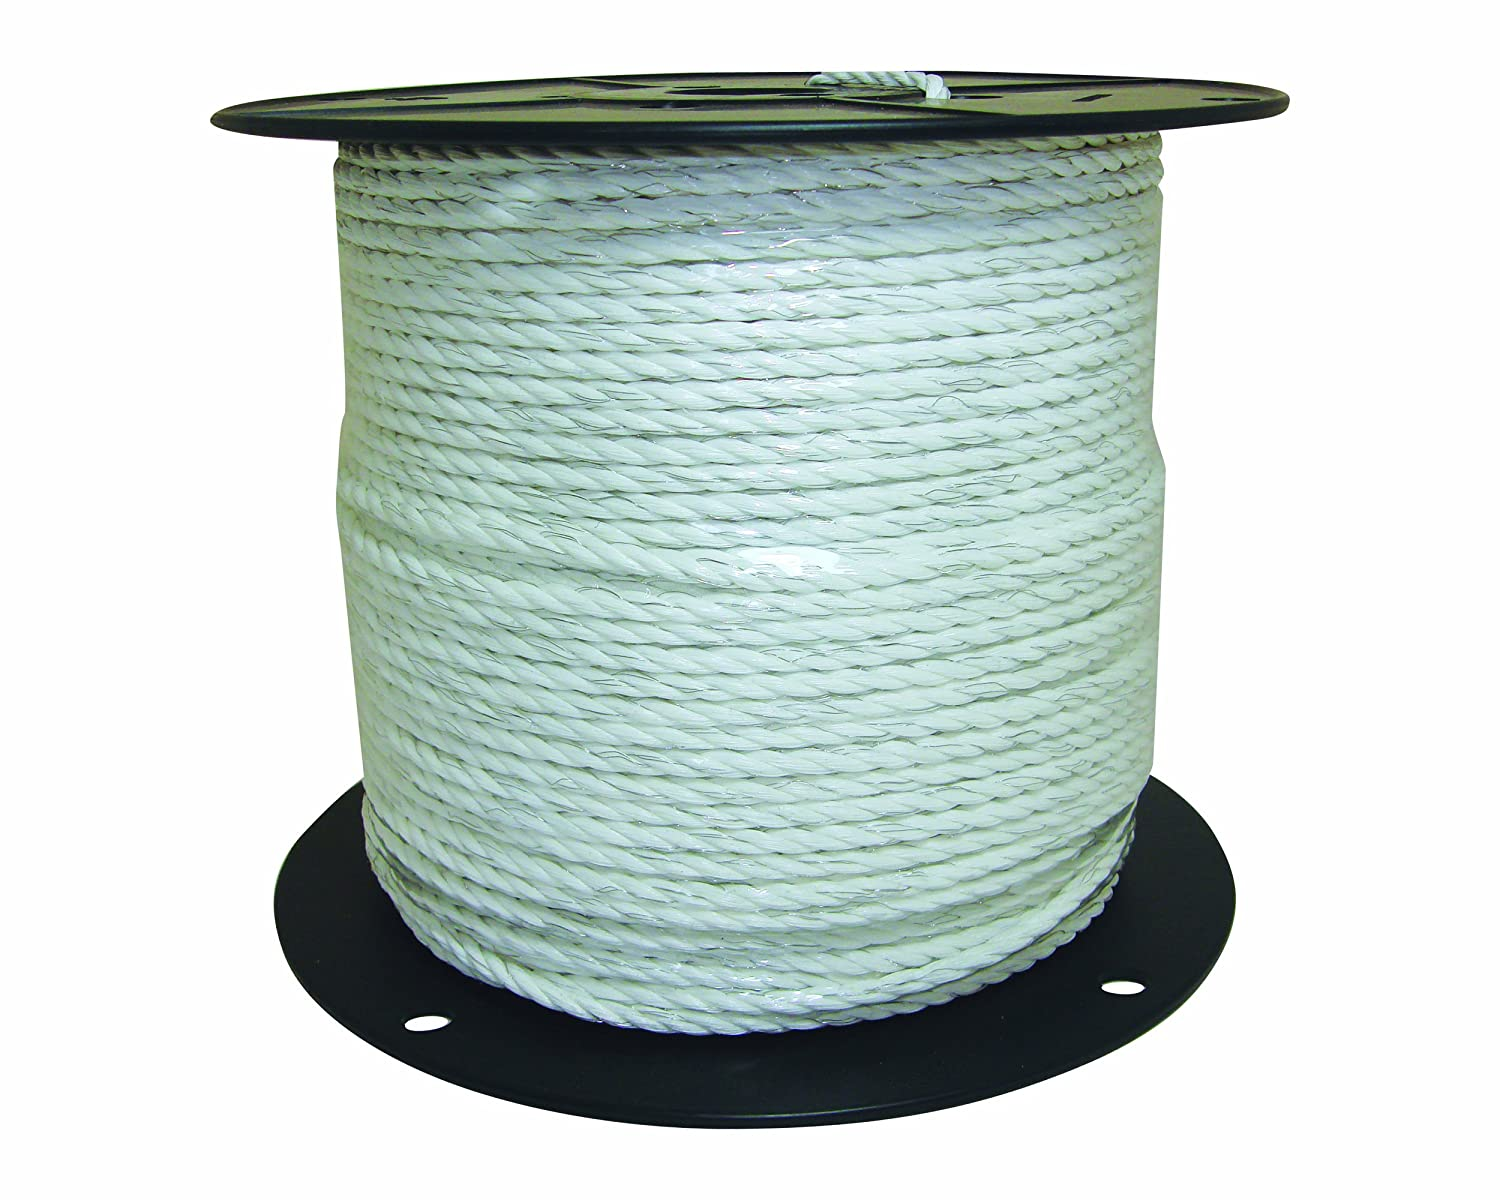 Field Guardian Economy Polyrope, 1 4-Inch, White